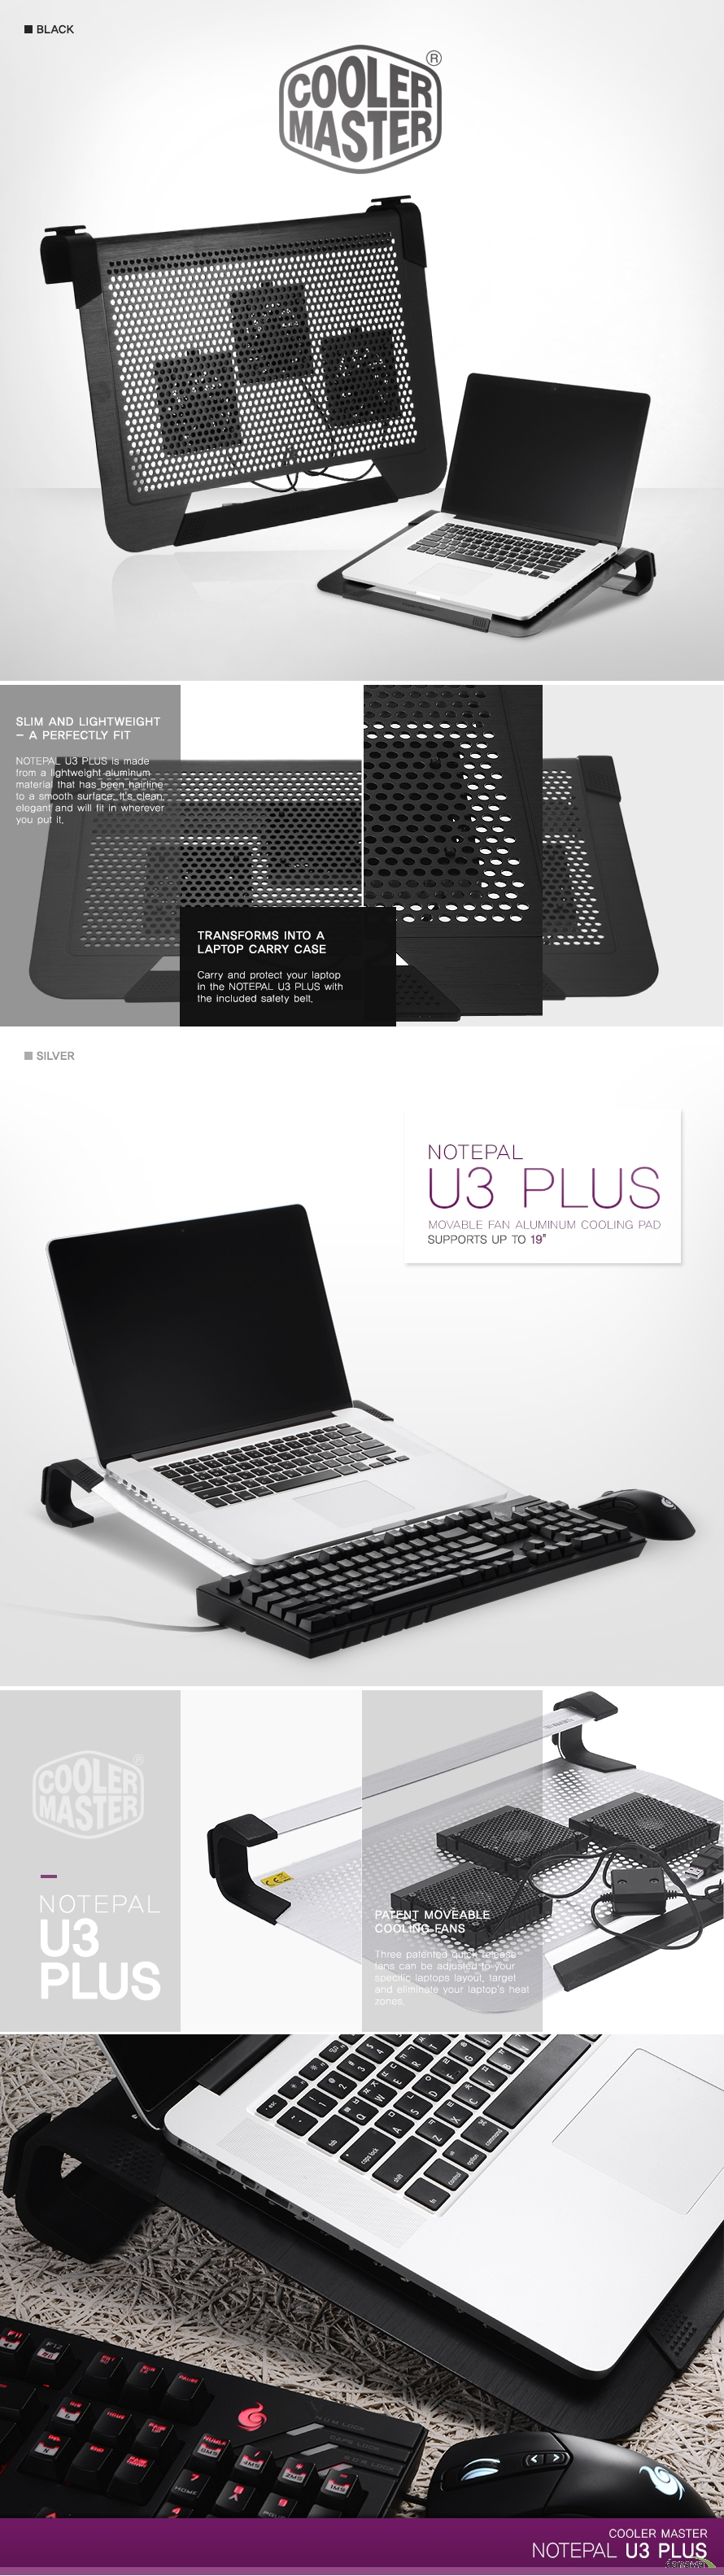 Cooler Master Slim and Lightweight - A Perfectly Fit NOTEPAL U3 PLUS is made from a lightweight aluminum material that has been hairline to a smooth surface. It's clean, elegant and will fit in wherever you put it.Transforms Into a Laptop Carry Case Carry and protect your laptop in the NOTEPAL U3 PLUS with the included safety belt./ NOTEPAL U3 PLUS Movable Fan Aluminum Cooling Pad Supports up to 19 /Patent Moveable Cooling Fans Three patented quick release fans can be adjusted to your specific laptops layout, target and eliminate your laptop's heat zones. cooler master NOTEPAL U3 PLUS